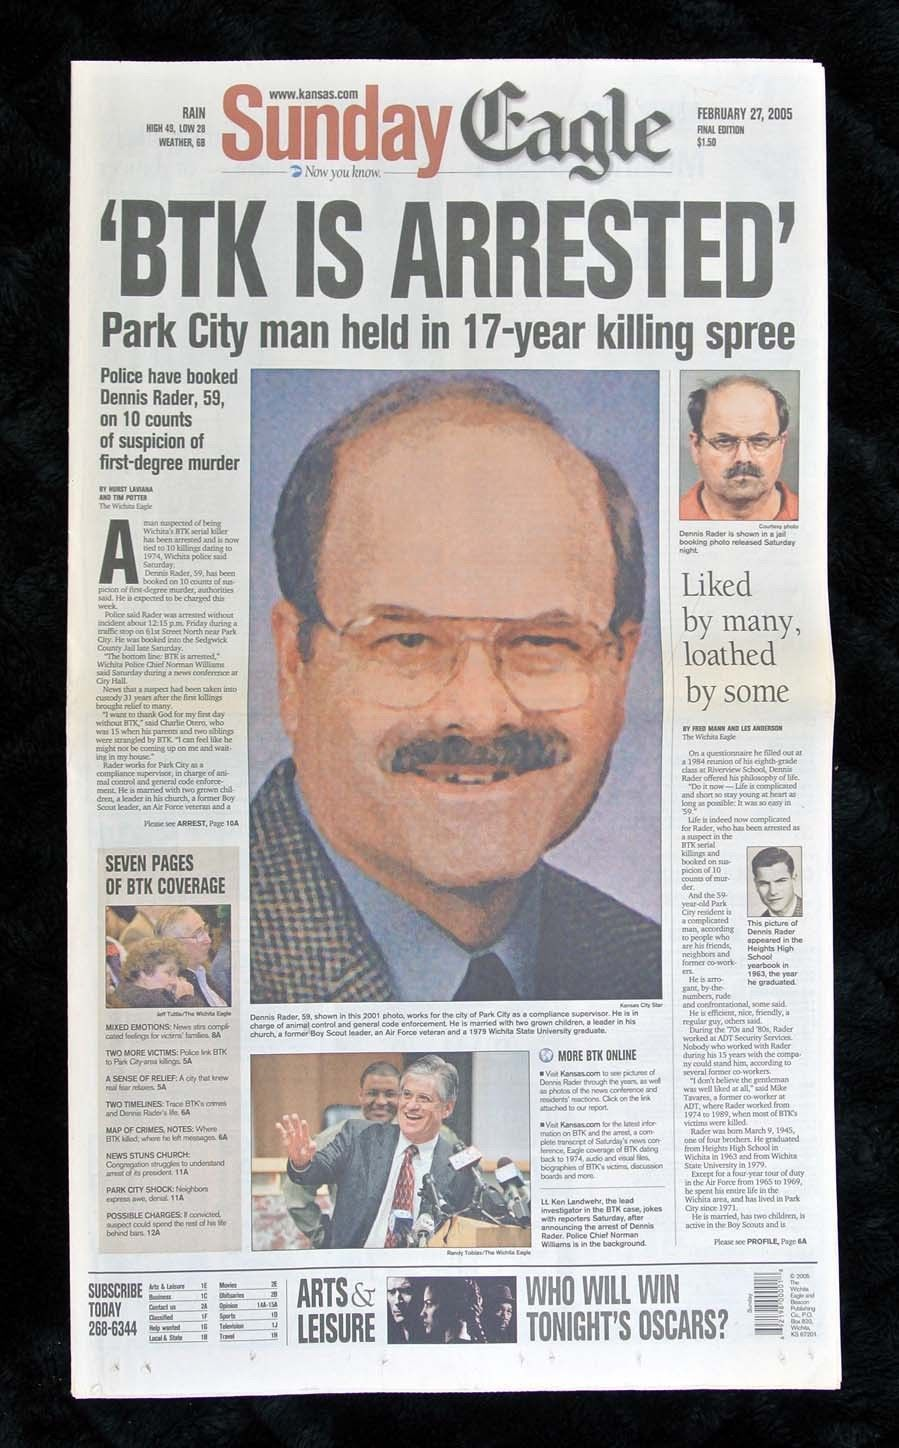 The arrest of BTK is featured on the cover of a local newspaper. His arrest was a huge relief to Wichita, Kansas, the city he terrorized the city for over 30 years.